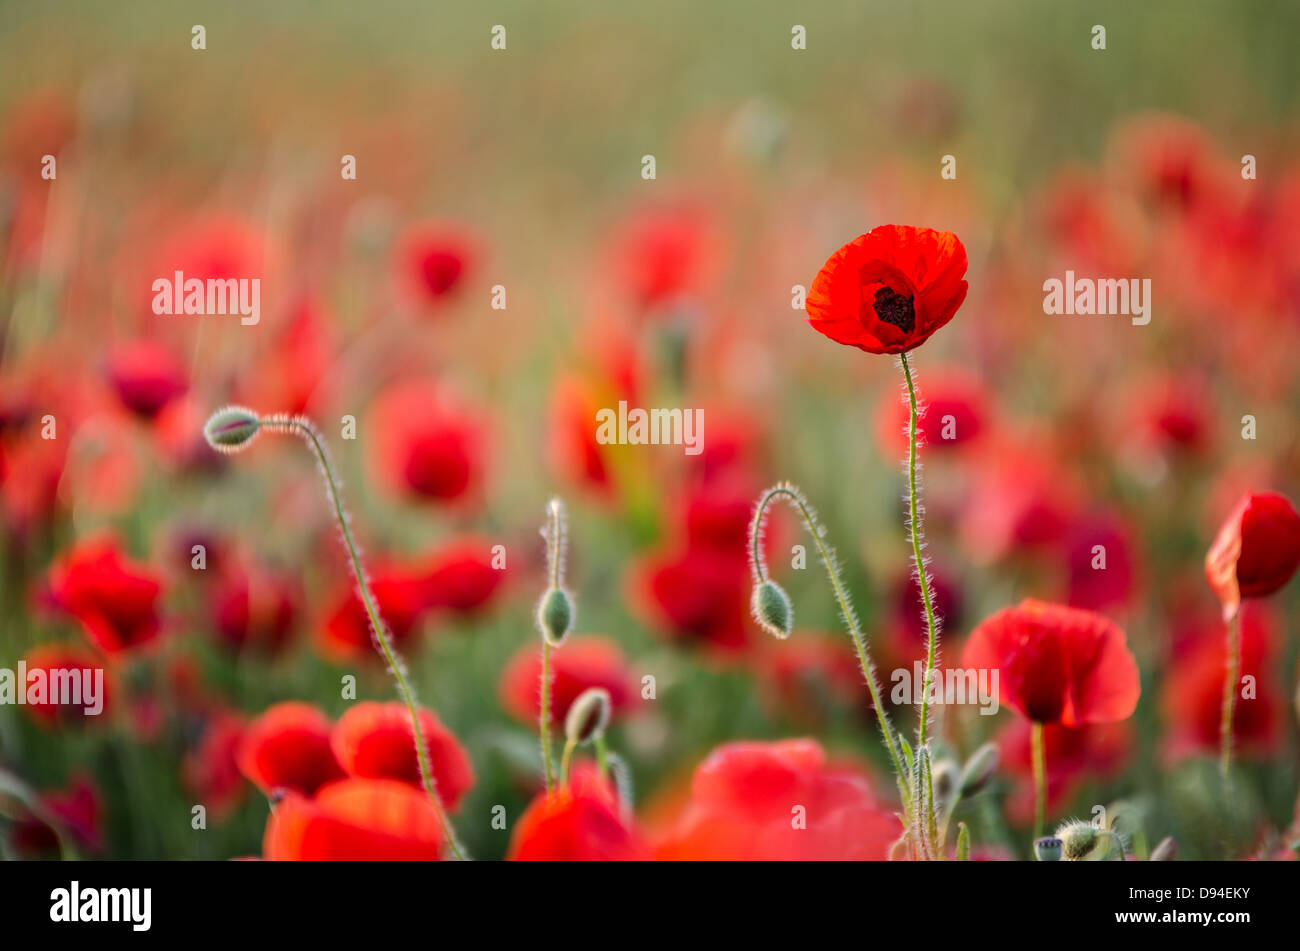 early spring poppy flowers backlit with the sun against blurred background selective focus - Stock Image